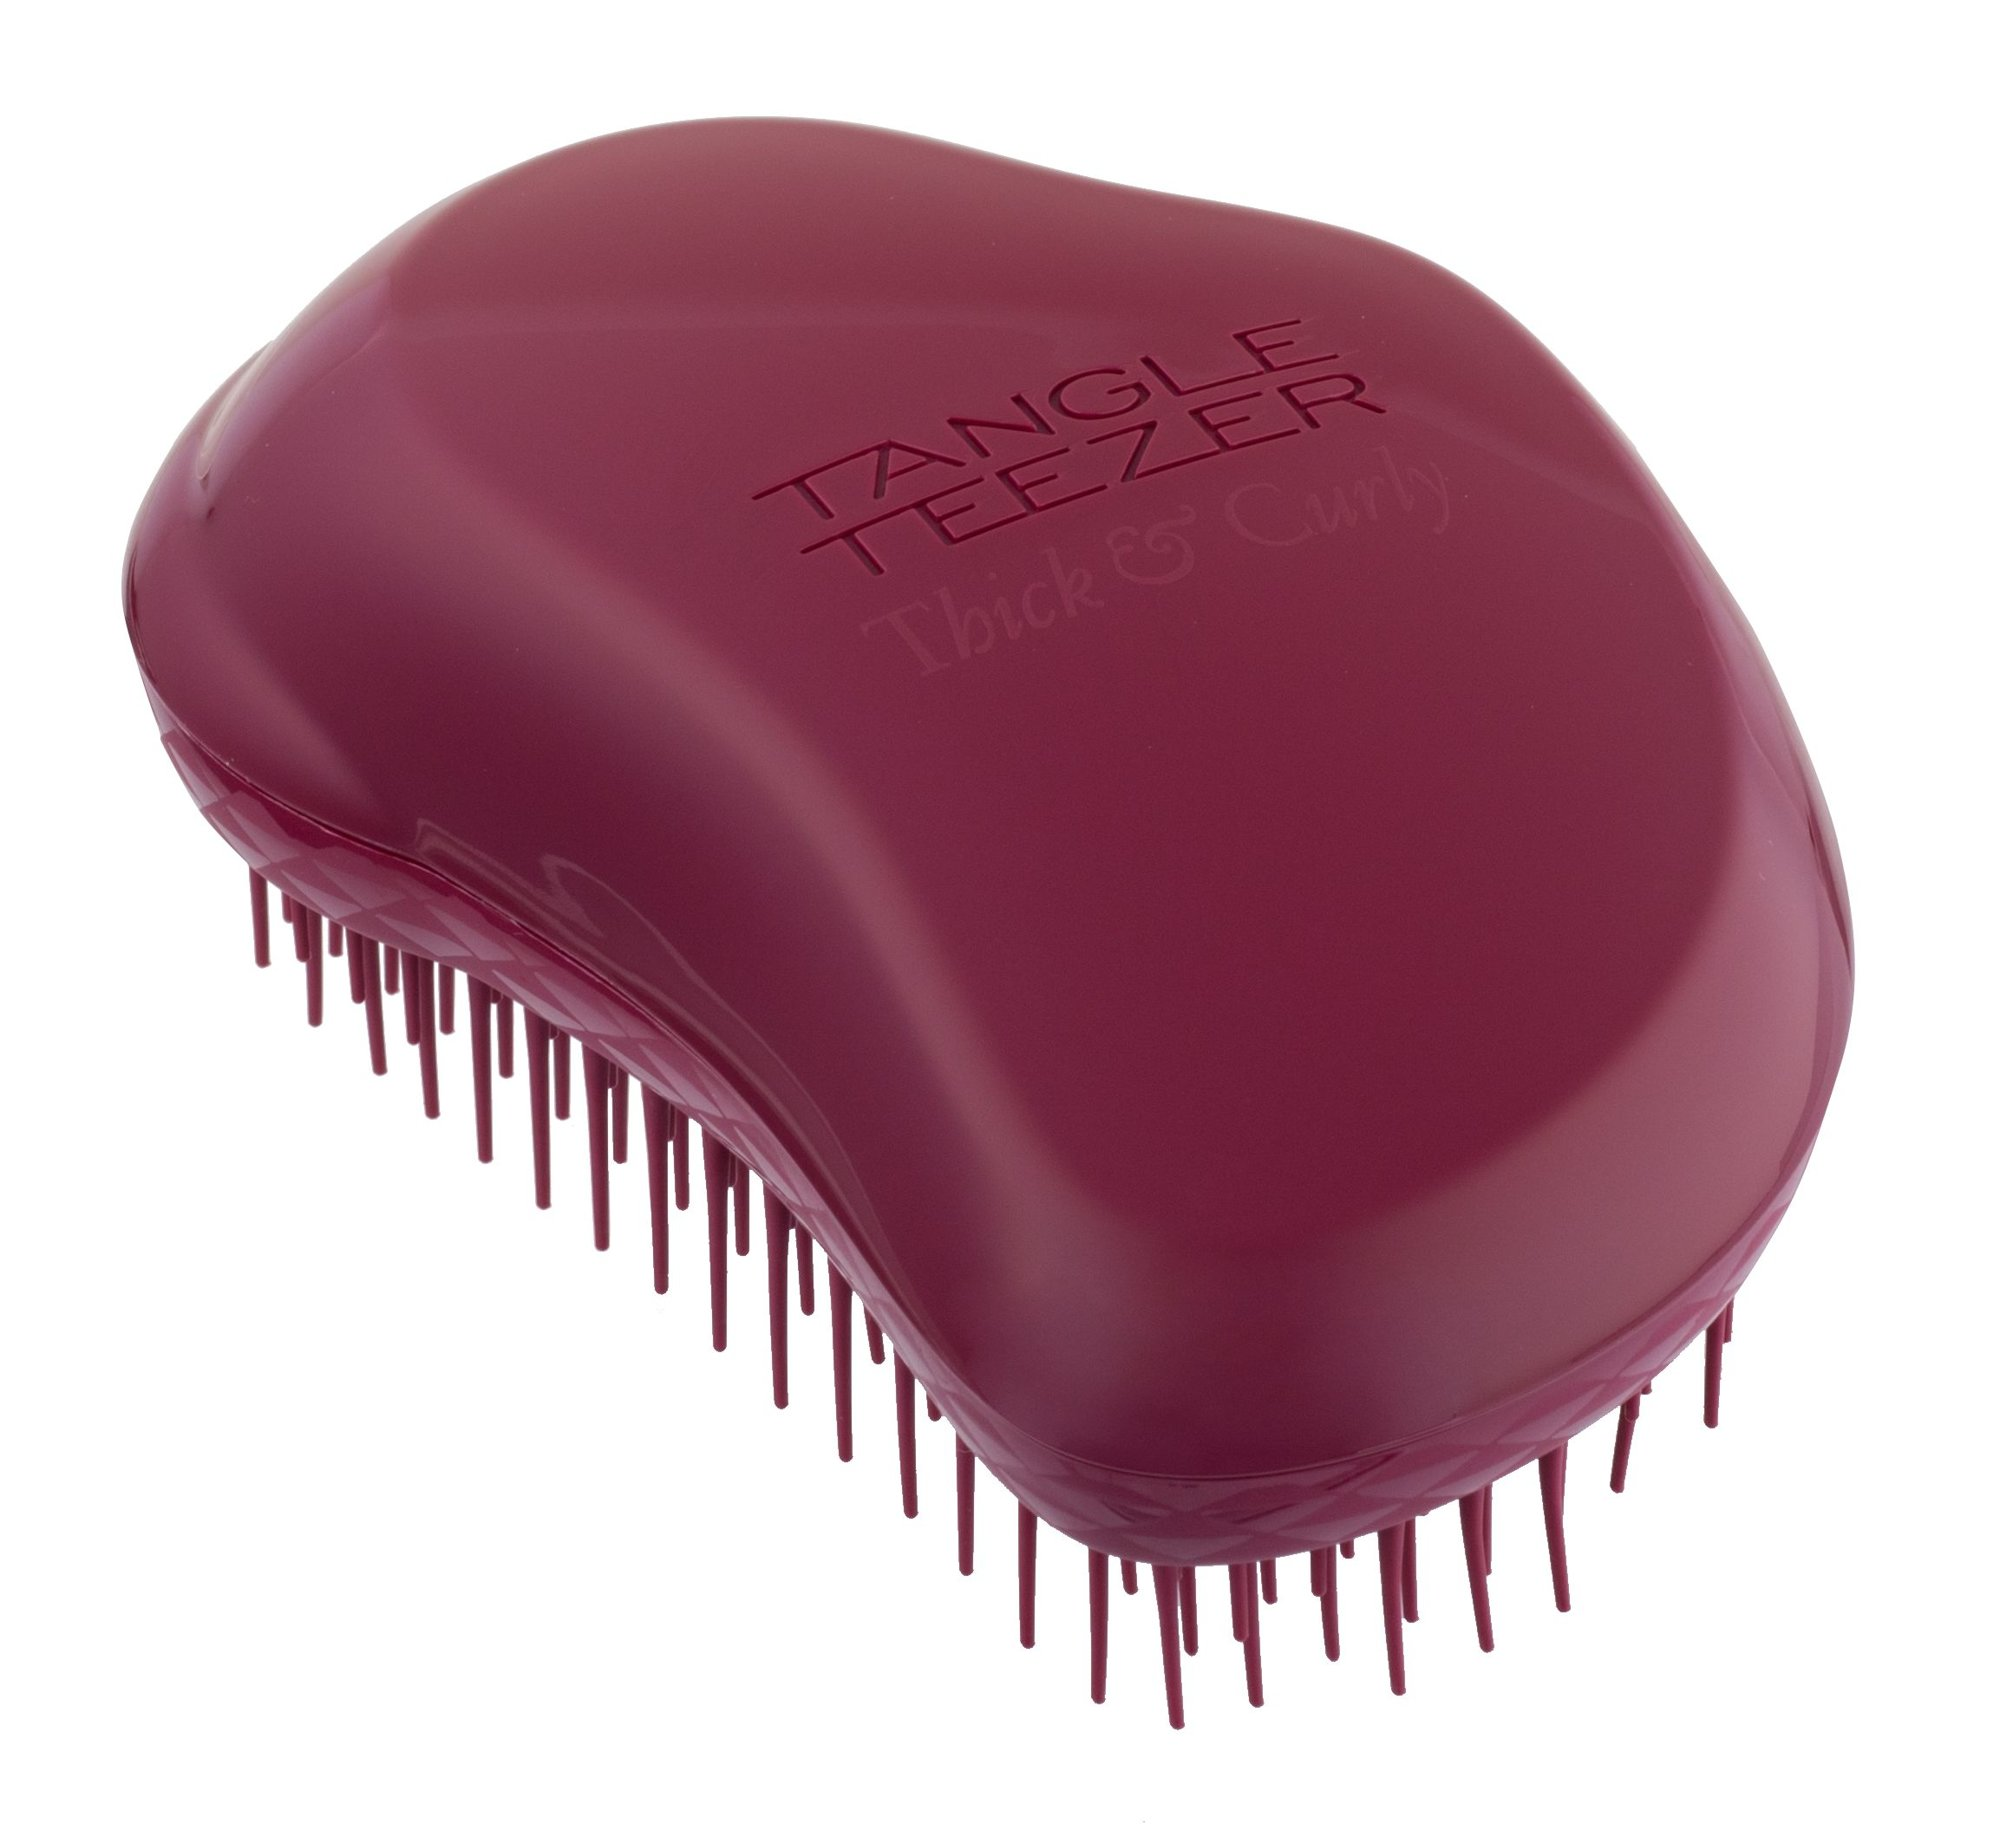 Tangle Teezer Thick & Curly Cosmetic 1ml